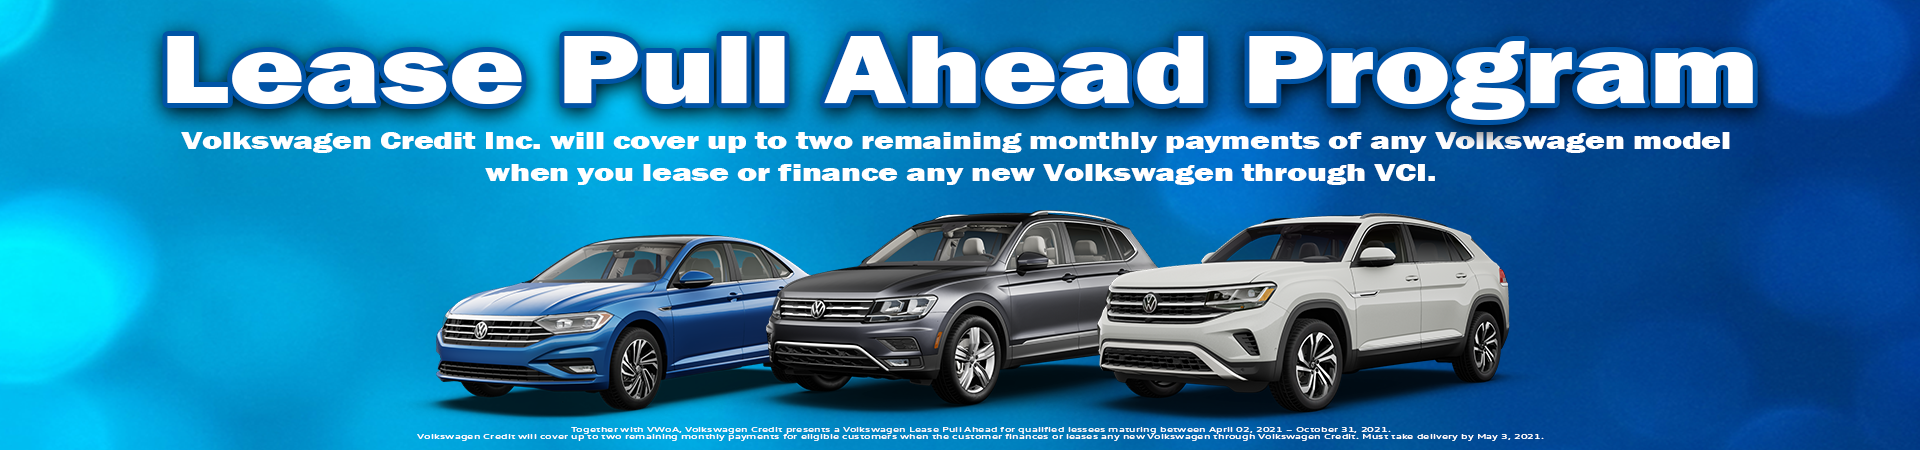 VW Orland Park_Lease Pull Ahead Program